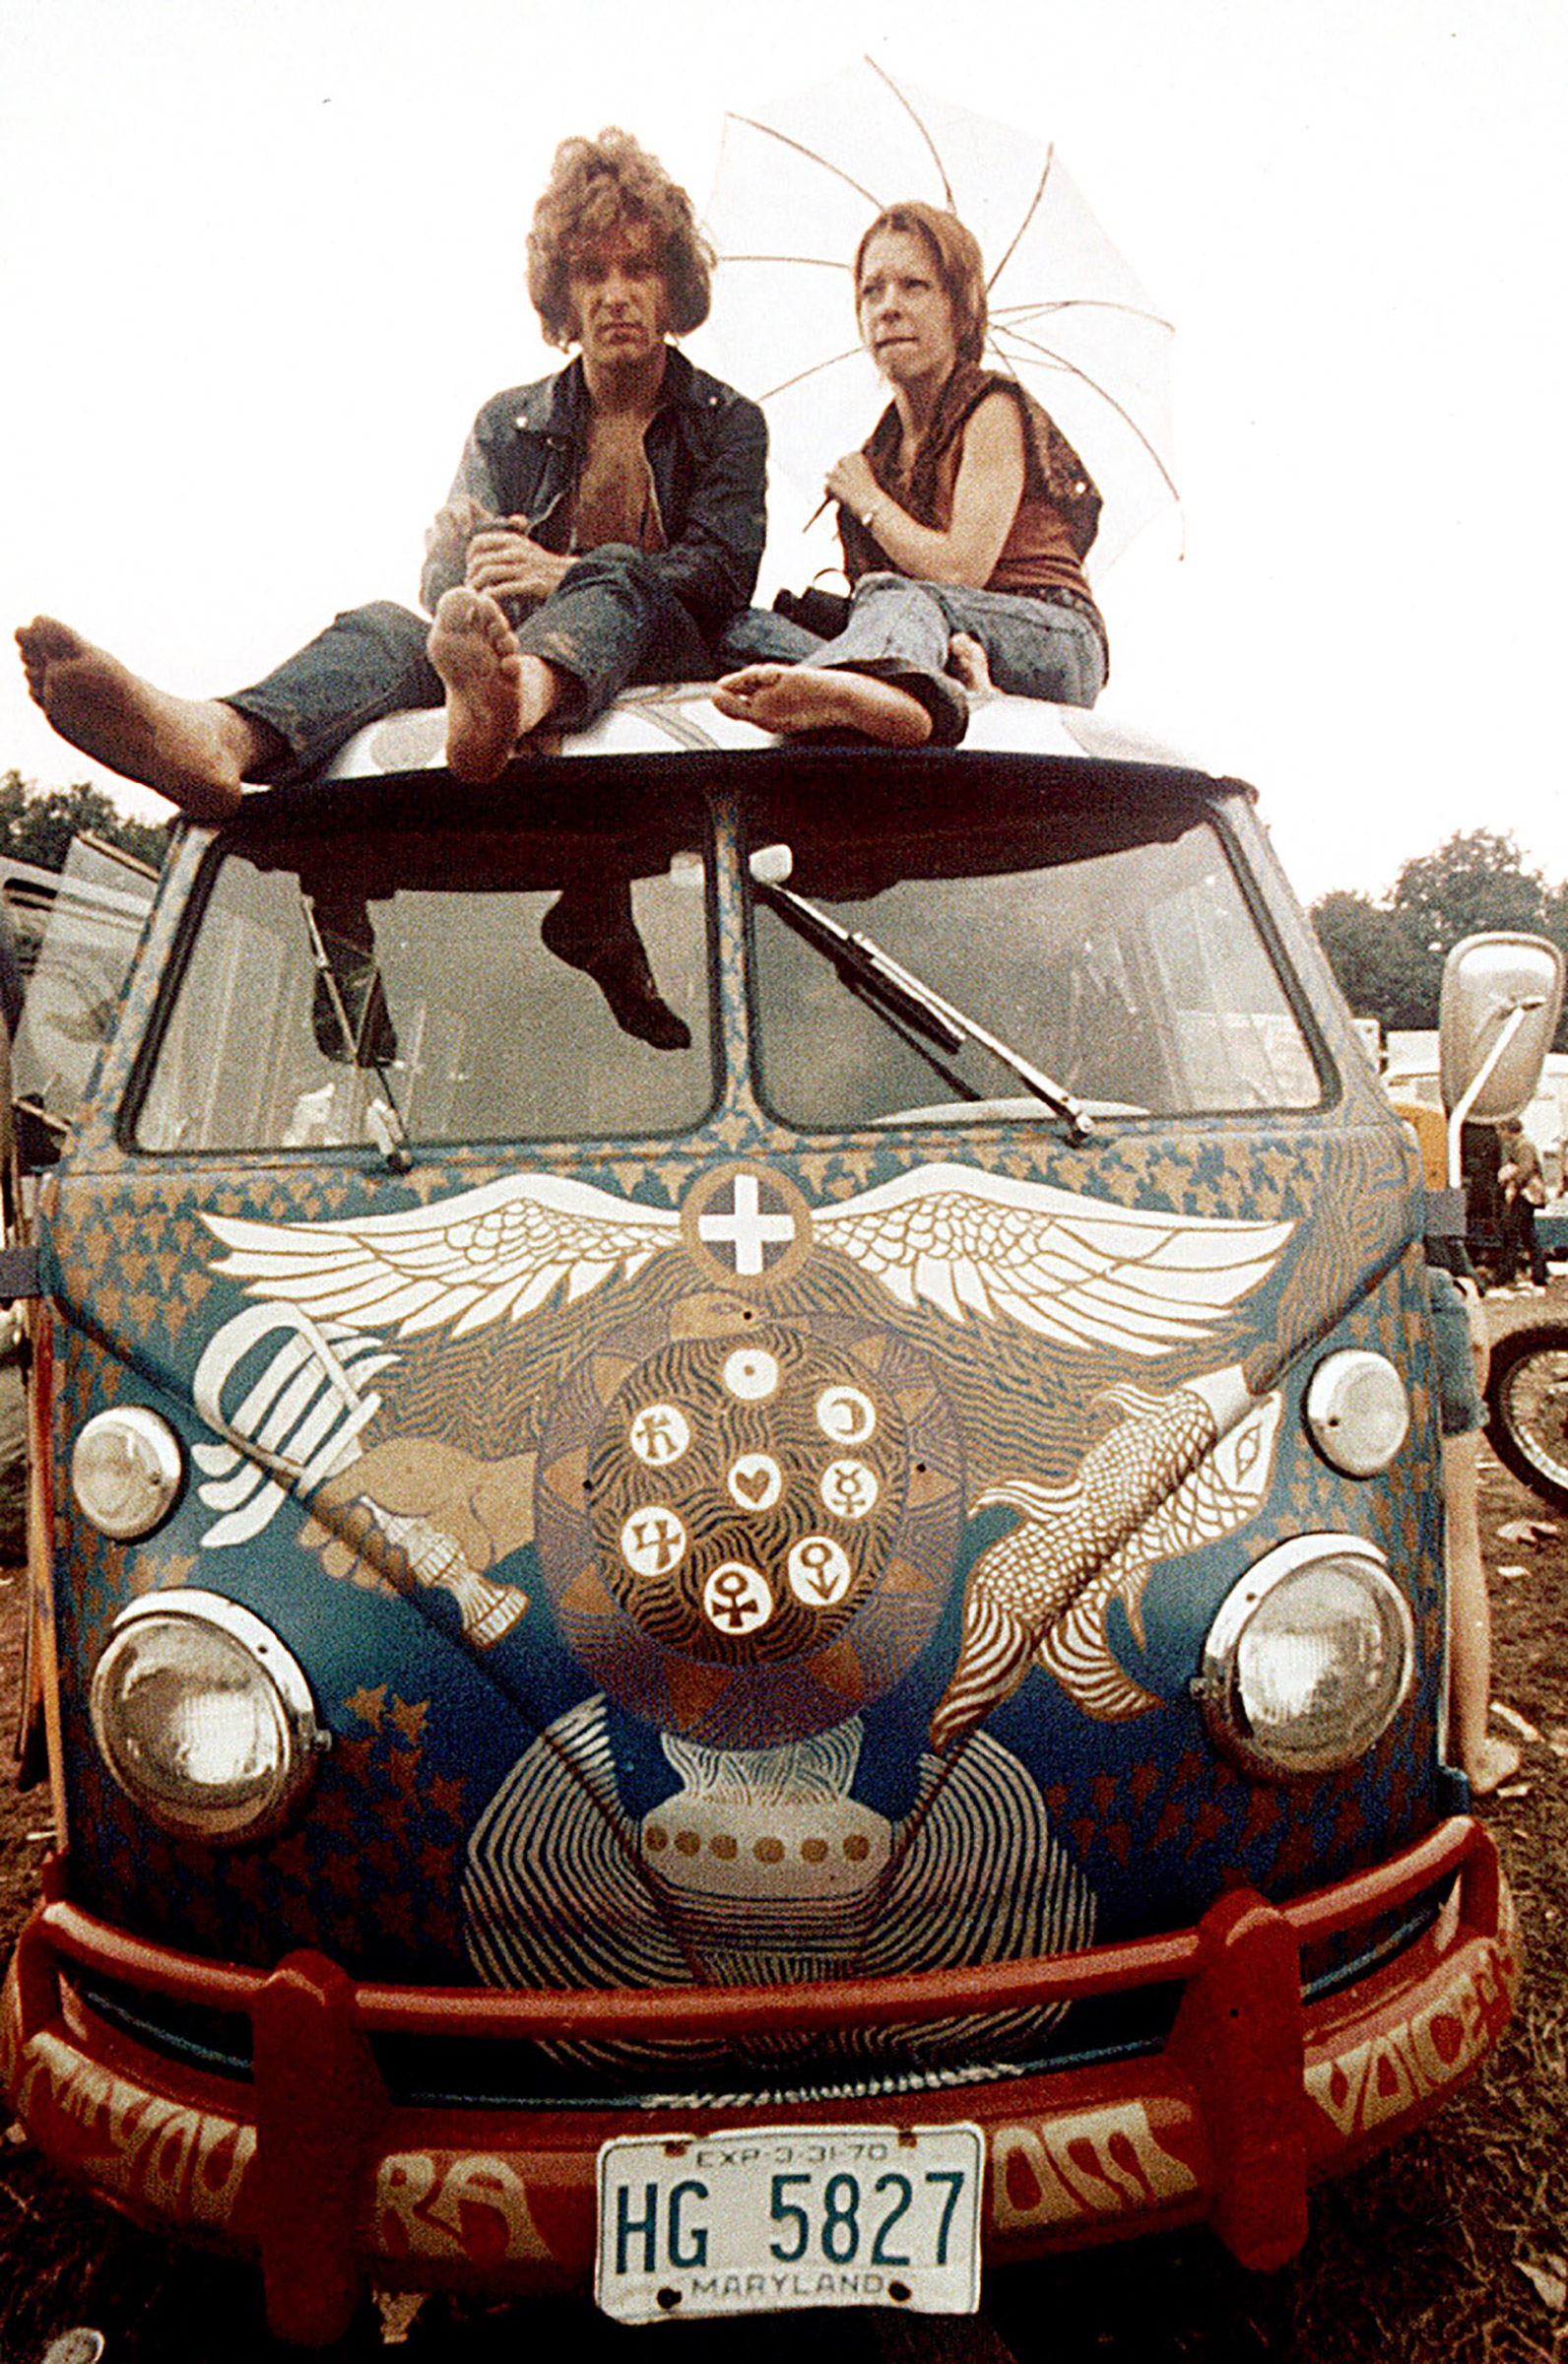 Concert-goers sit on the roof of a Volkswagen bus at the Woodstock Music and Arts Fair at Bethel, N.Y., in mid-August, 1969.